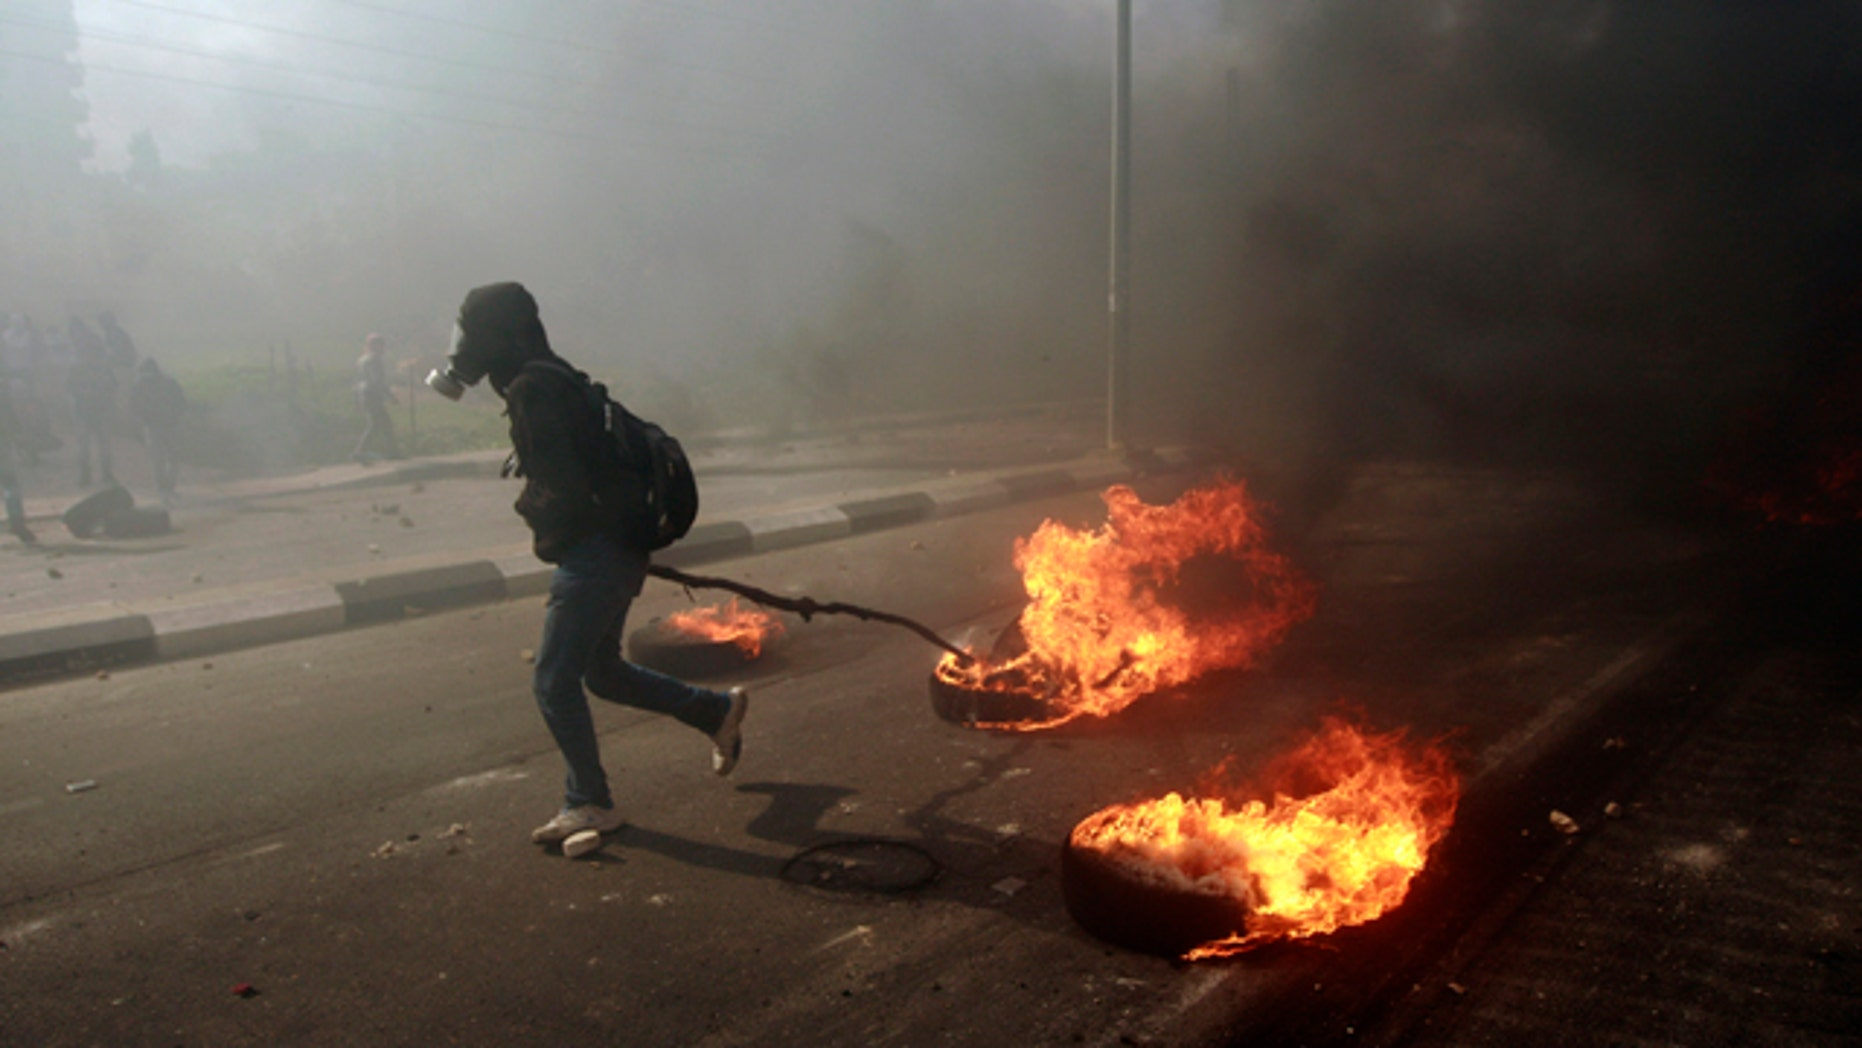 Feb. 25, 2013: A man burns tires during a protest to support Palestinian prisoners, outside Ofer, an Israeli military prison, near the West Bank city of Ramallah.